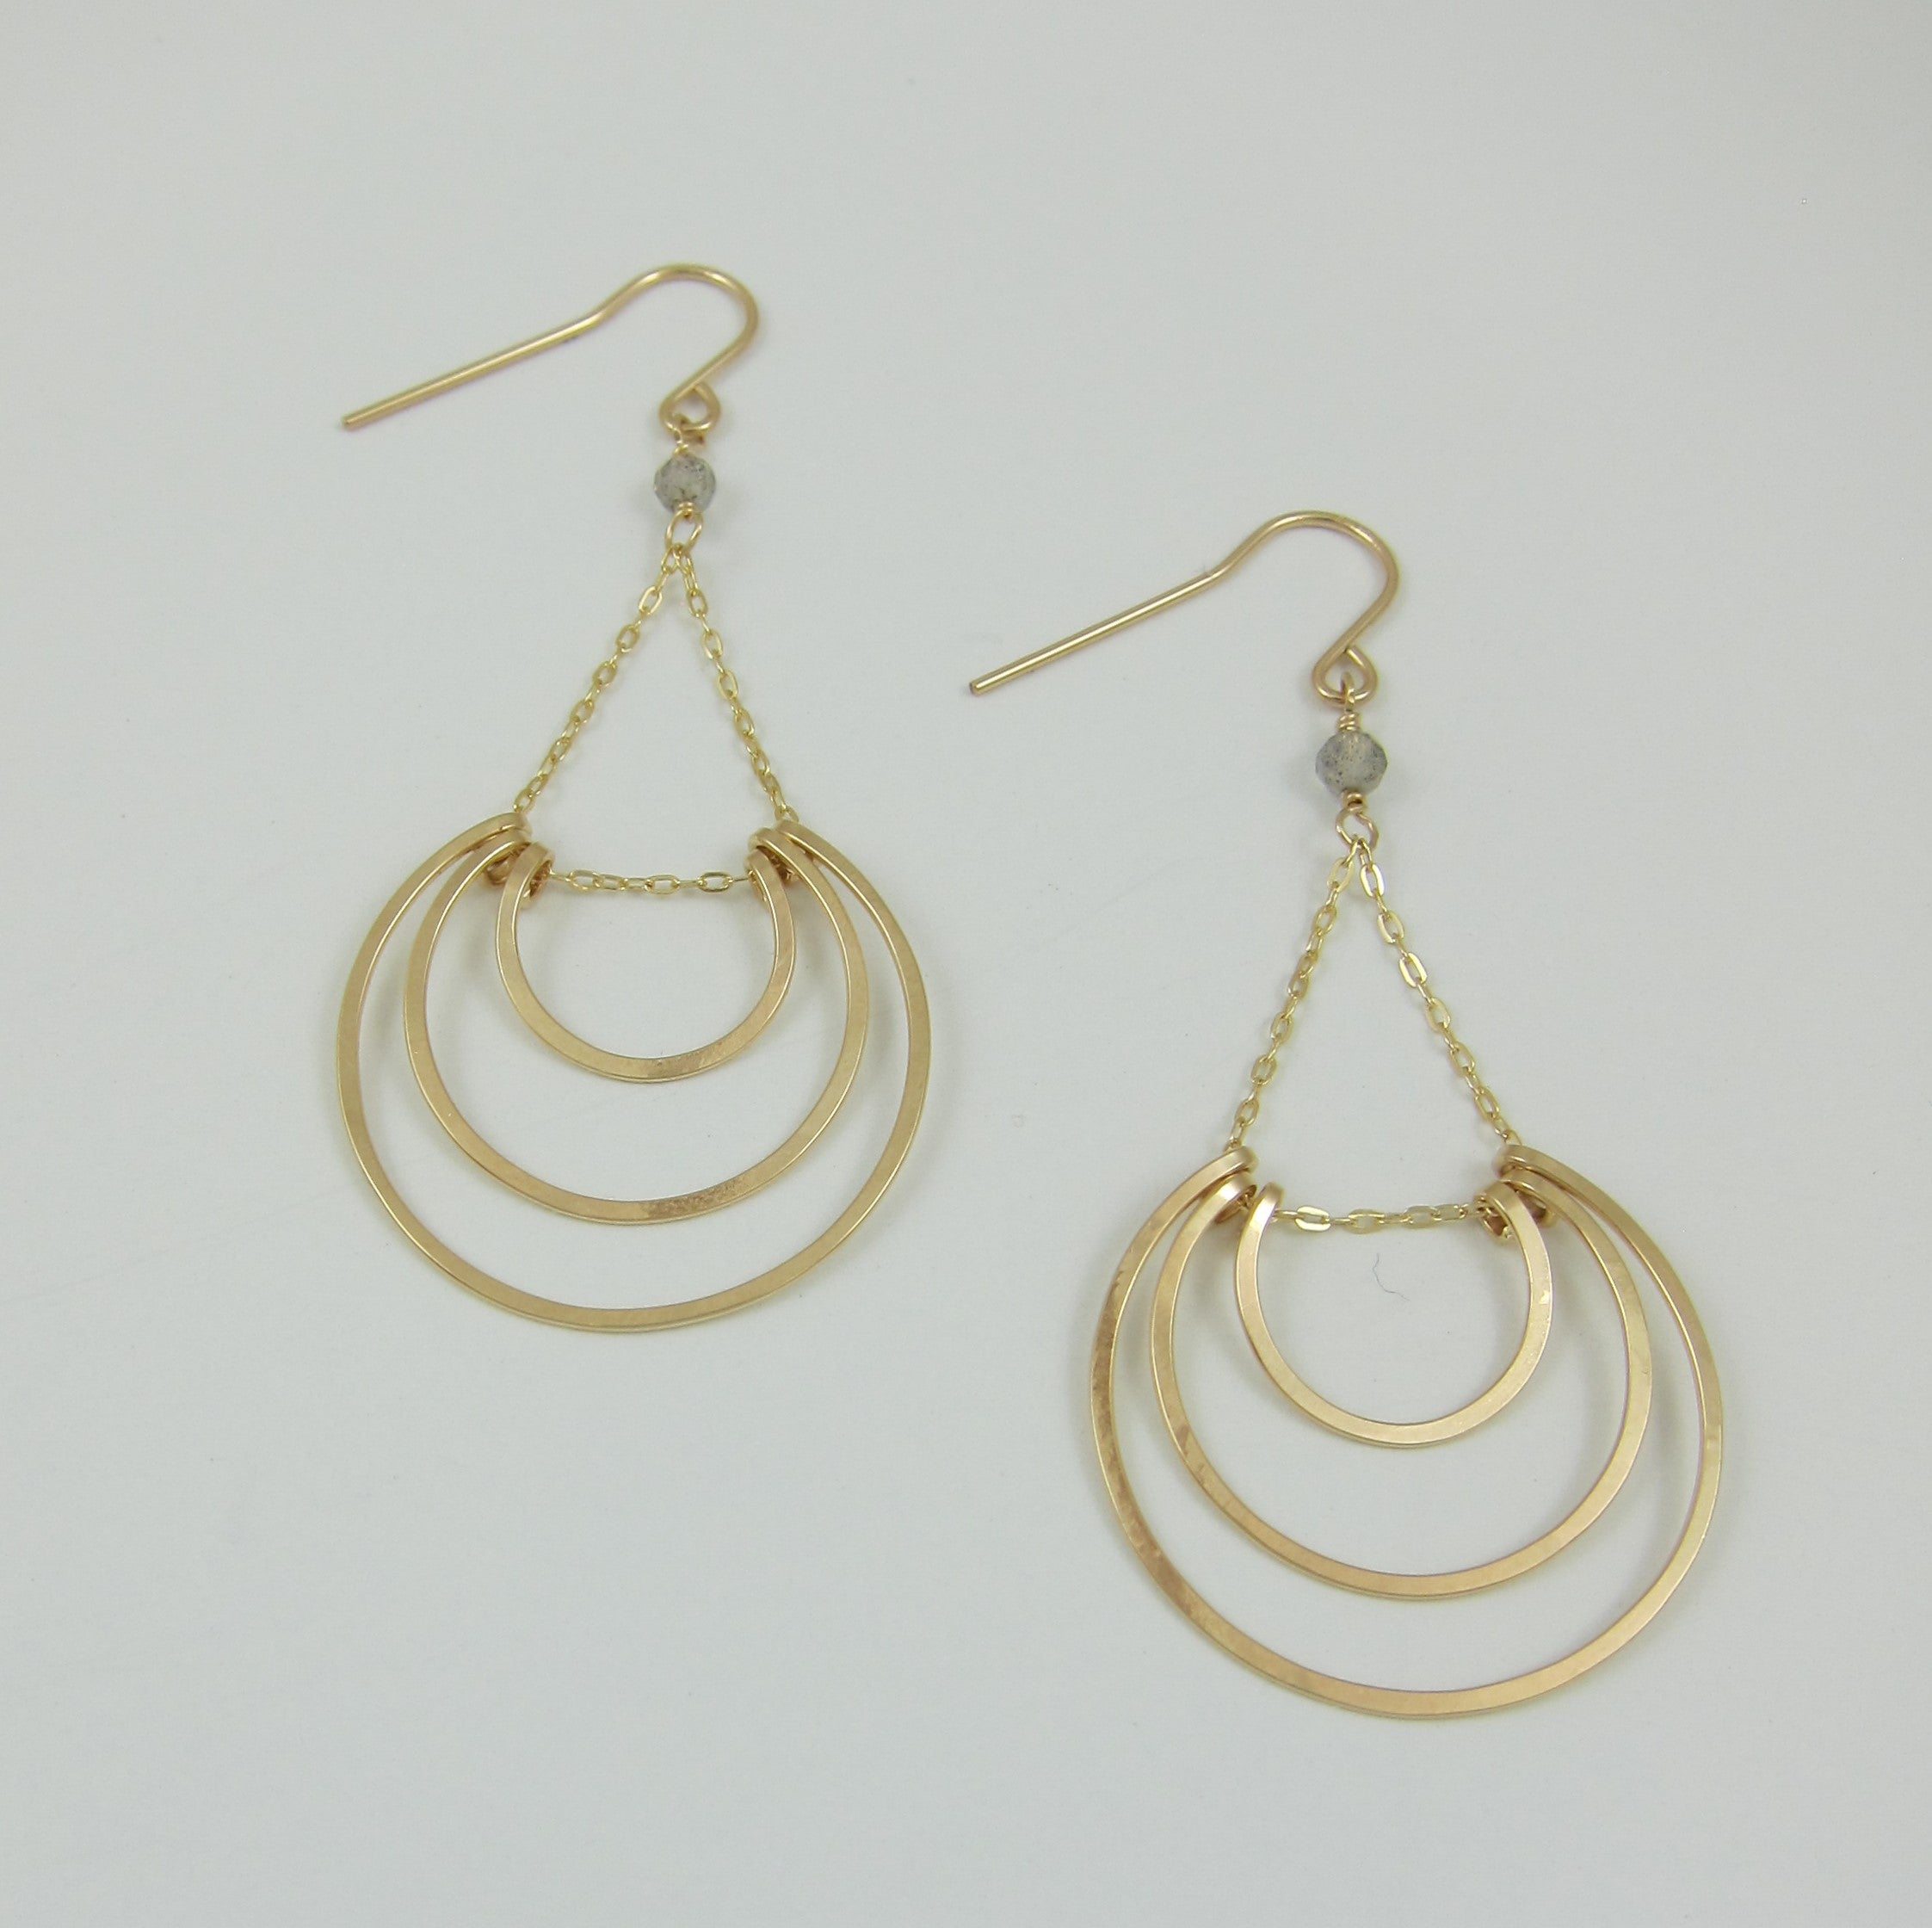 14kg Hand-Forged Crescent Earrings